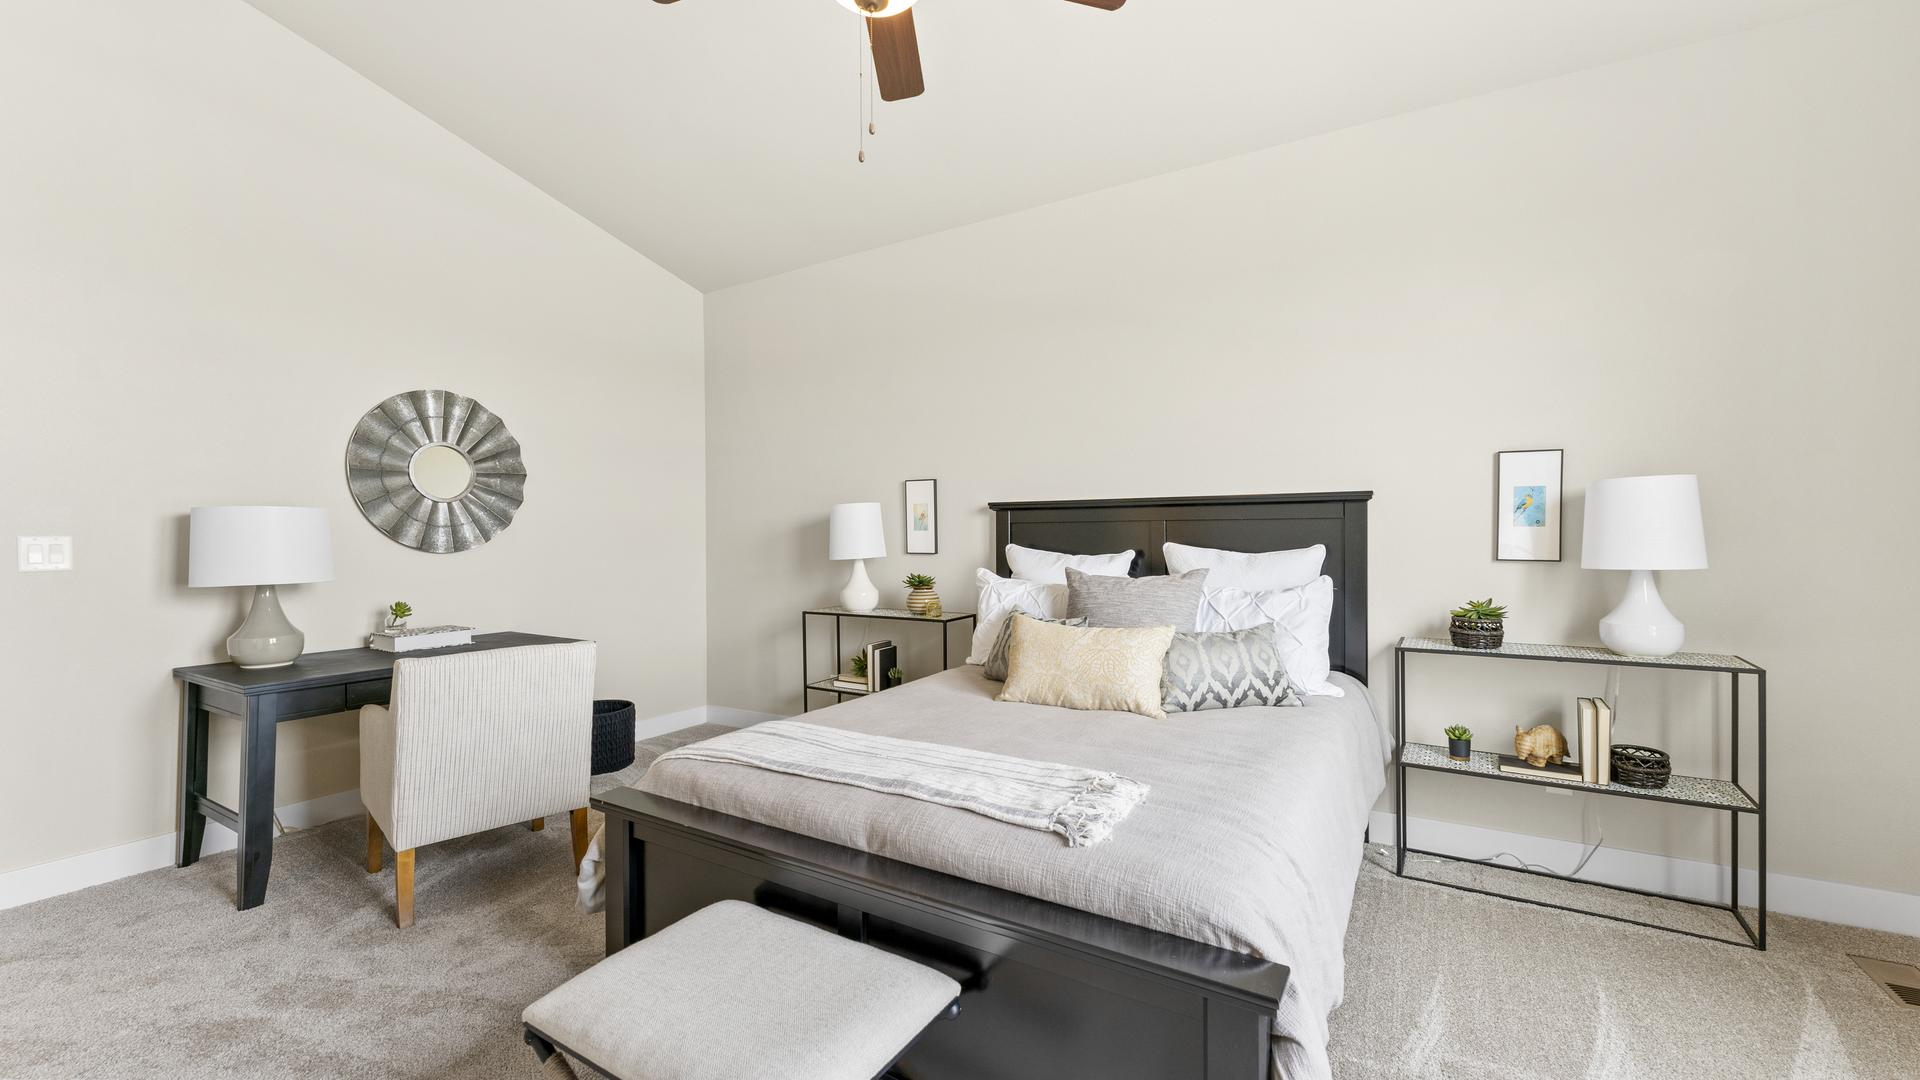 Master Bedroom - Not Actual Home - Finishes Will Vary